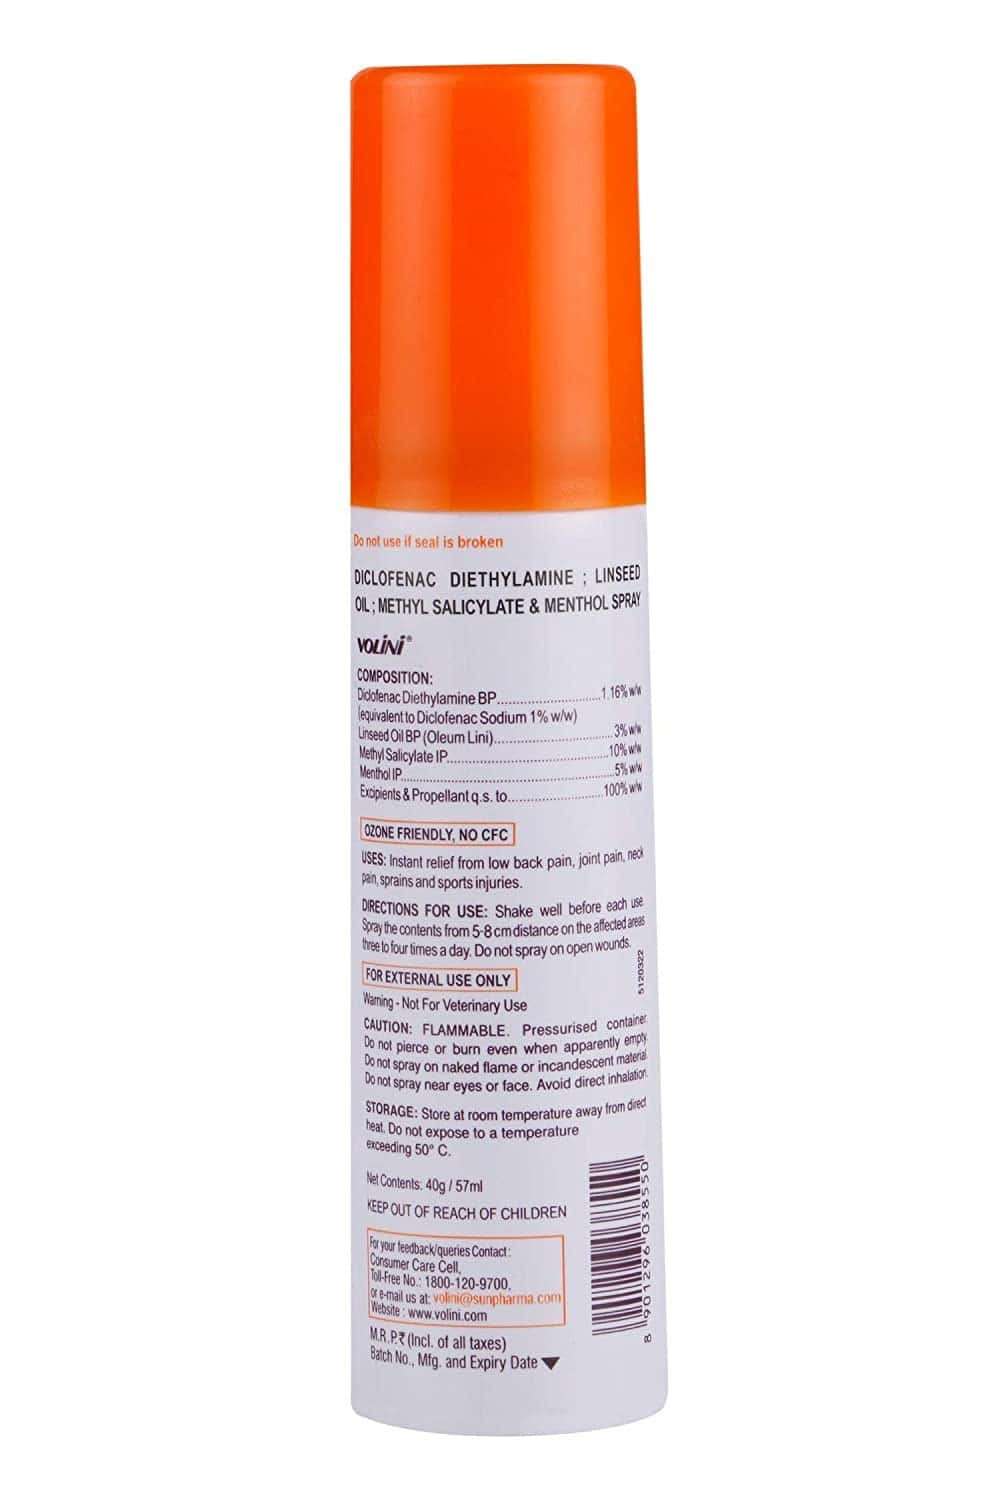 New Volini All Round 360 Action Spray Bottle Of 40 G